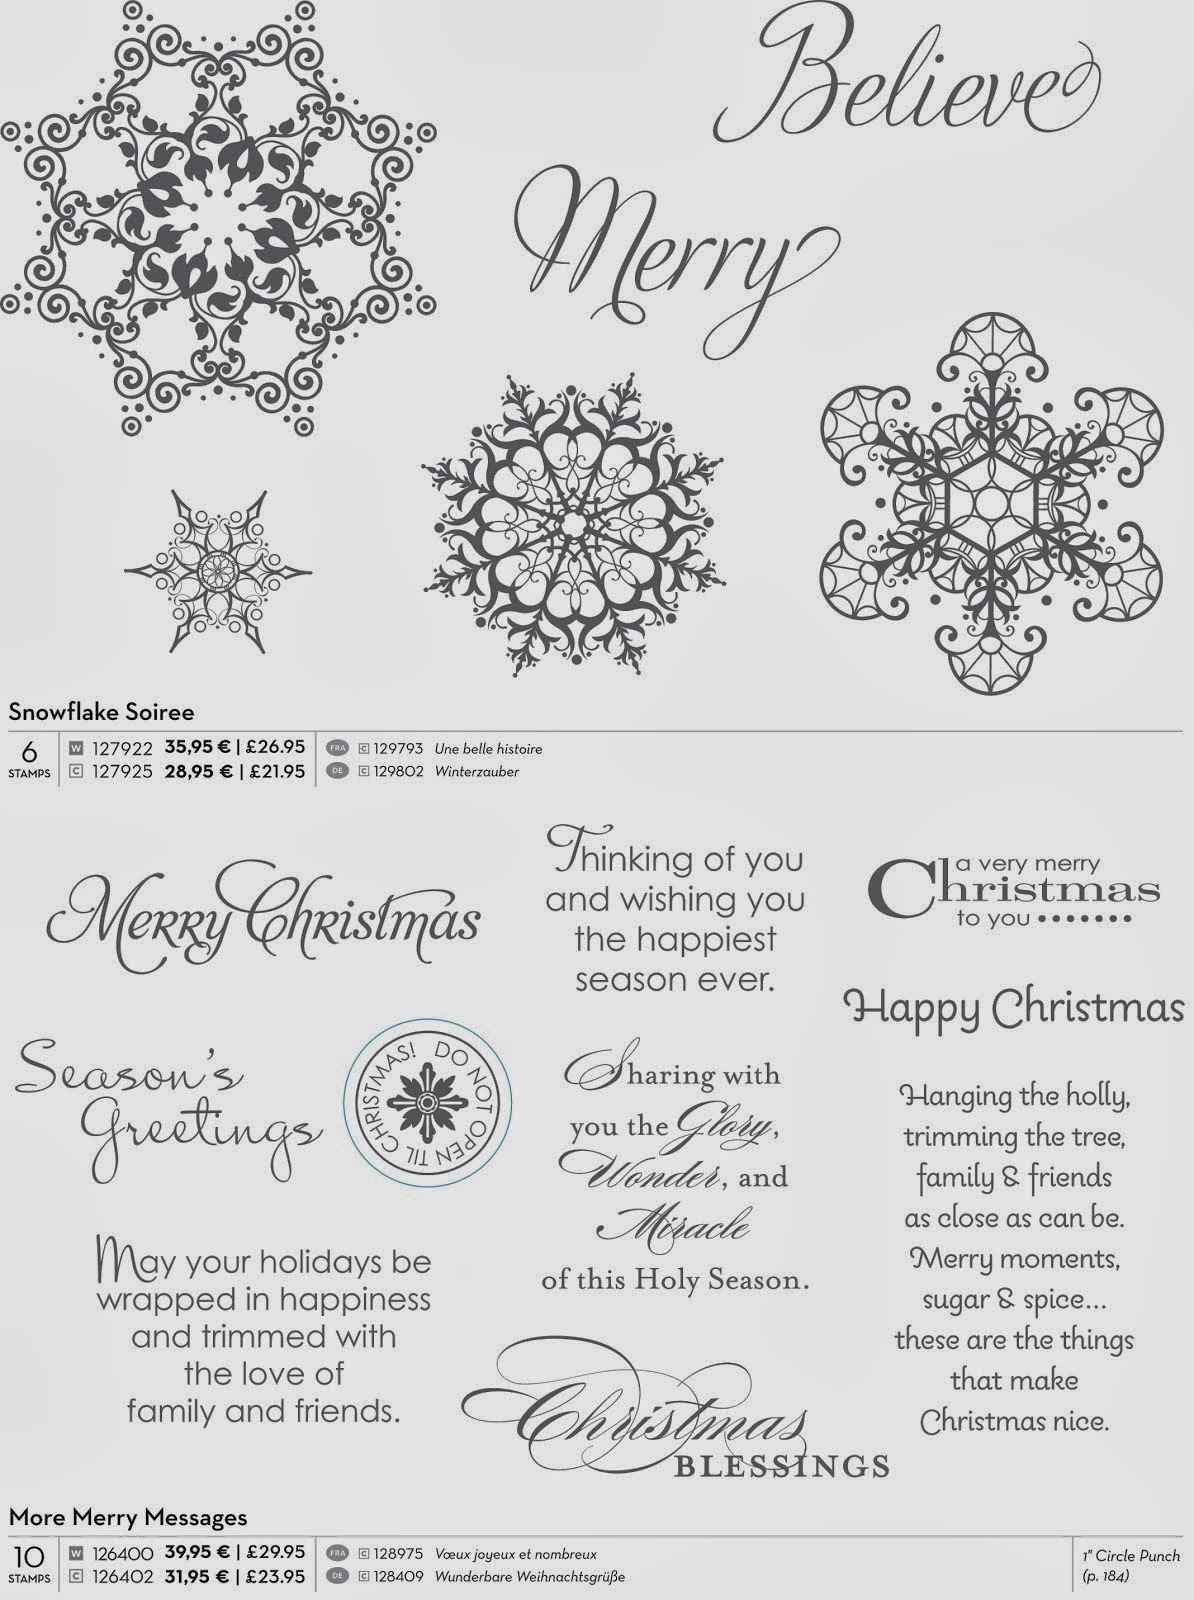 Snowflake Soirree en More Merry Messages